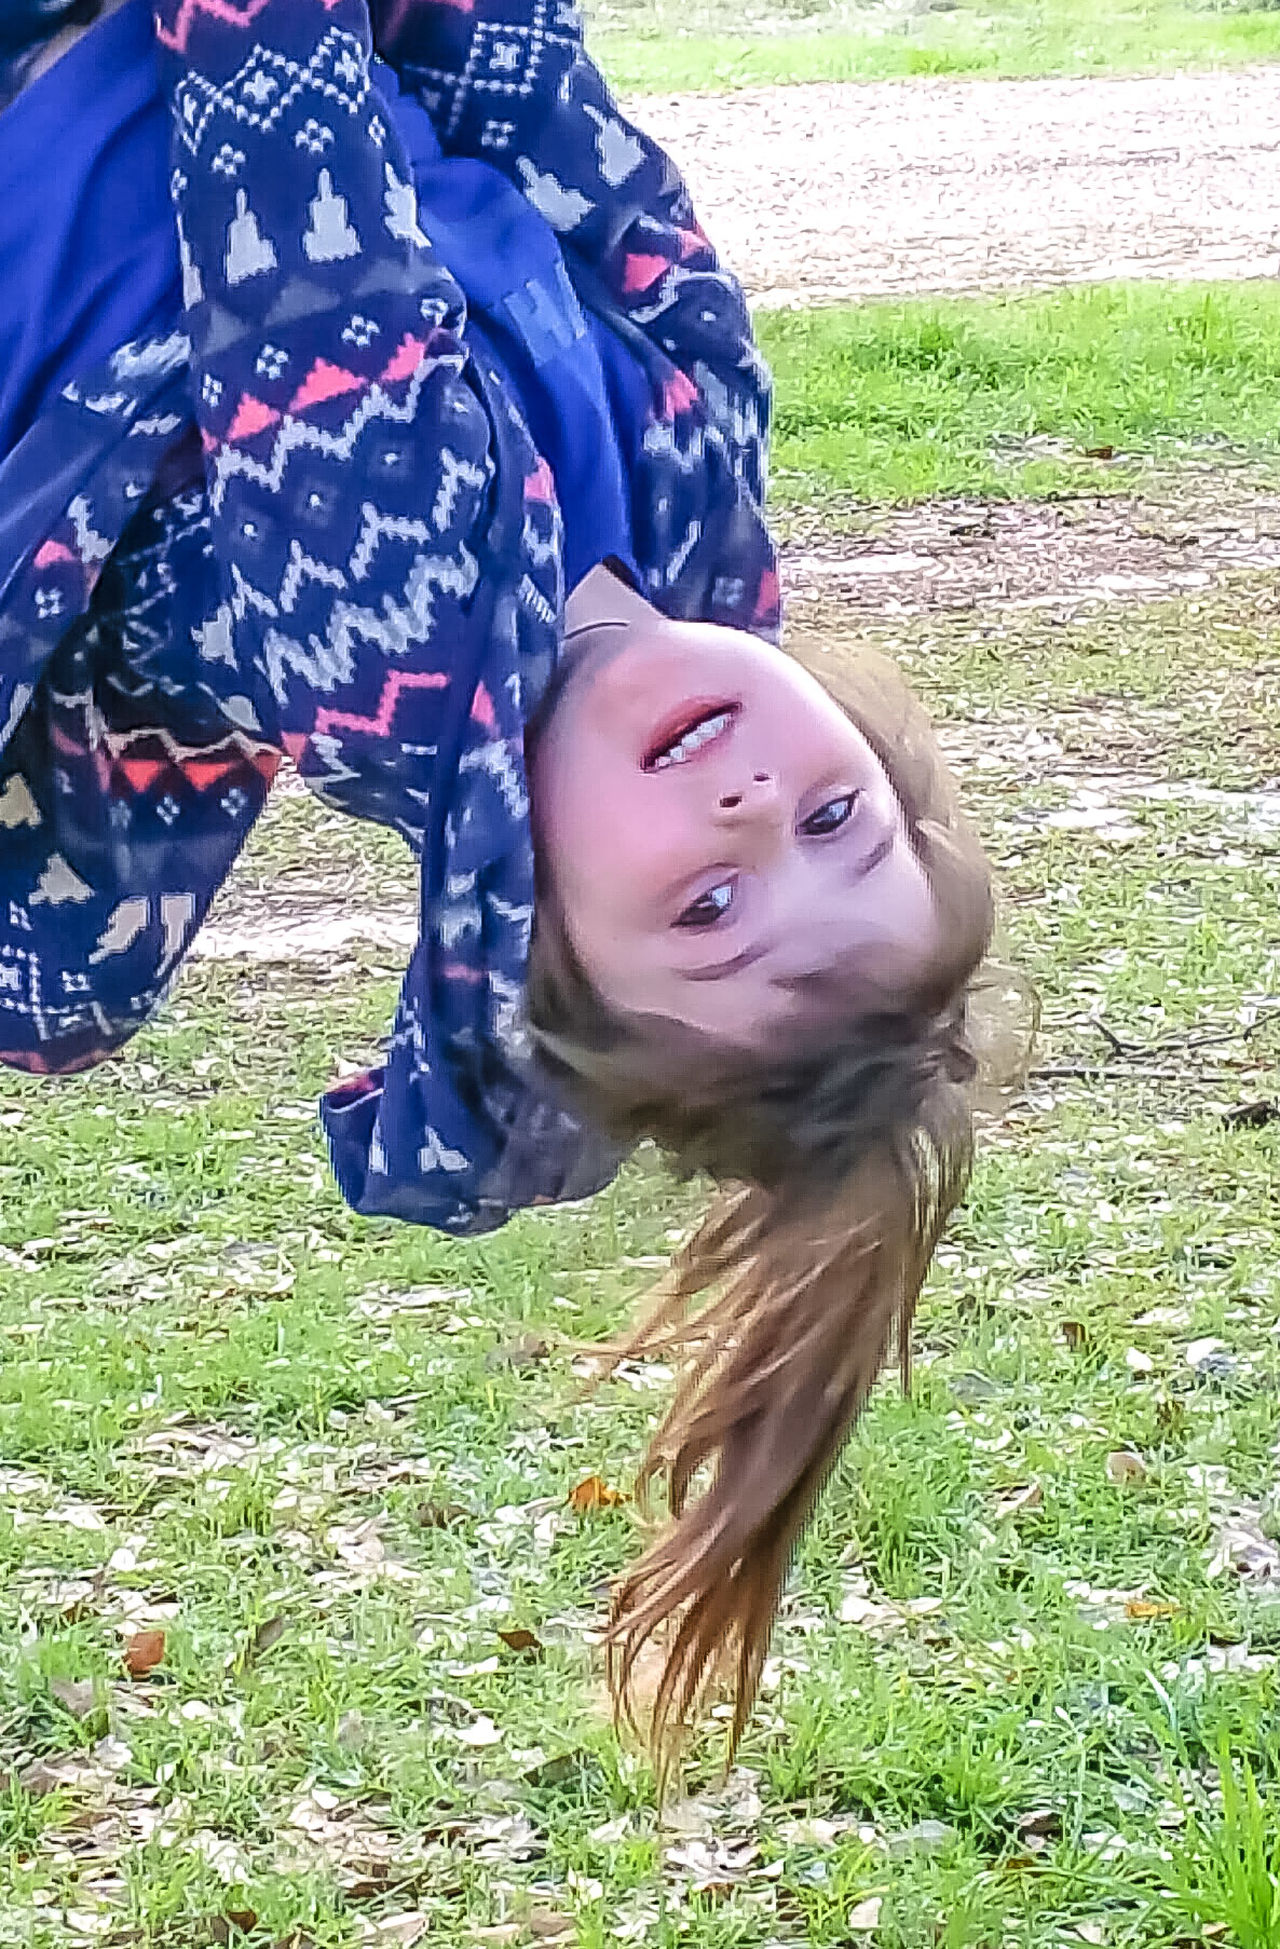 Real People Day Grass Leisure Activity Smiling Childhood Happiness Outdoors Young Women Young Adult Lifestyles One Person Portrait People Adult Hanging Upside Down Climbing Trees Playing Outside Ponytail Upside Down Having Fun Child Playing Naturelovers Child Only Girls